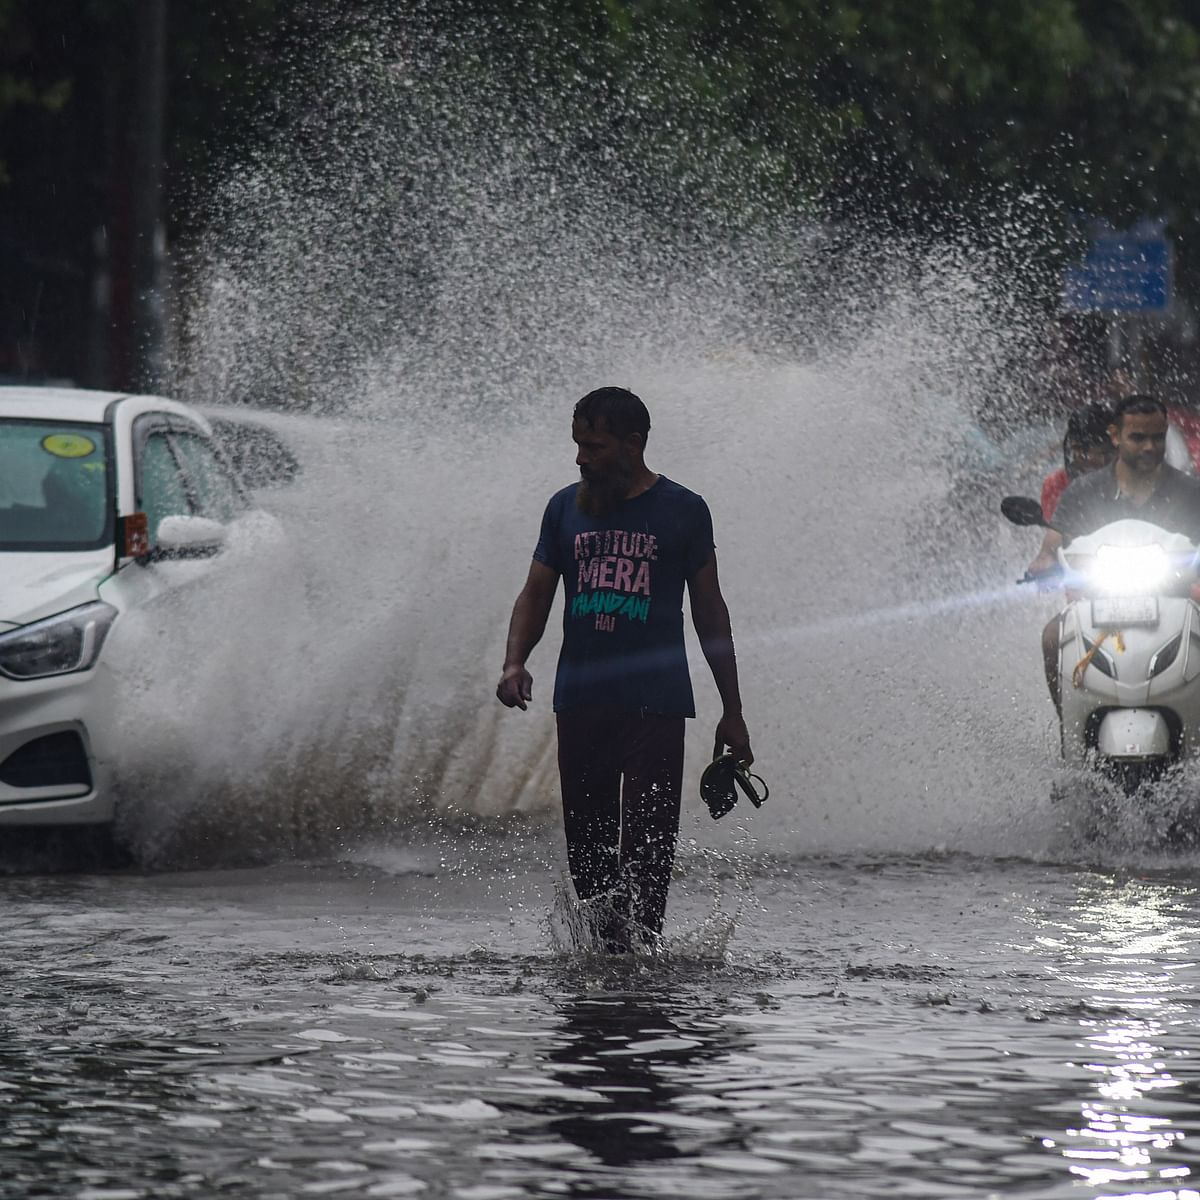 Bhopal Weather Update: Heavy rains after long gap; expect more